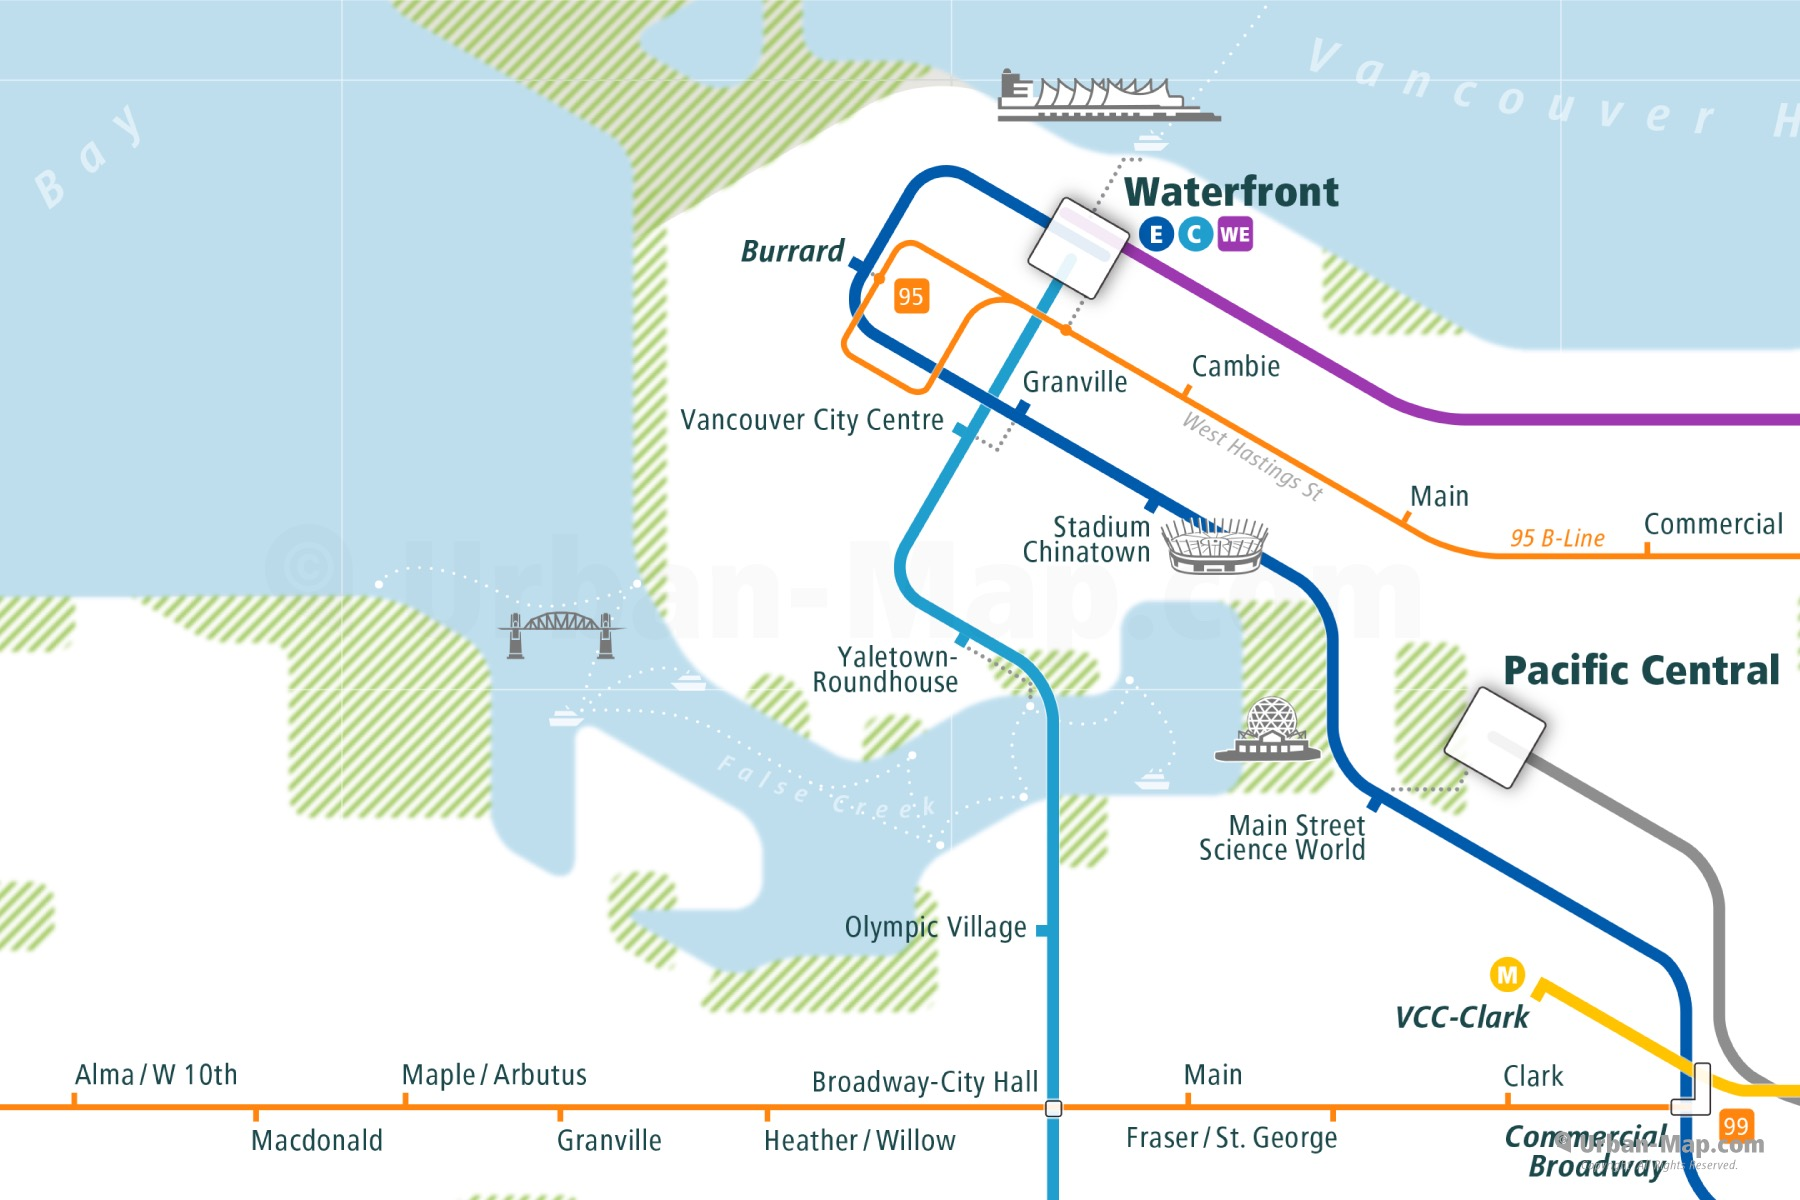 Vancouver City Rail Map shows the train and public transportation routes of metro, TransLink, ferry, bus, B-Line - Close-Up